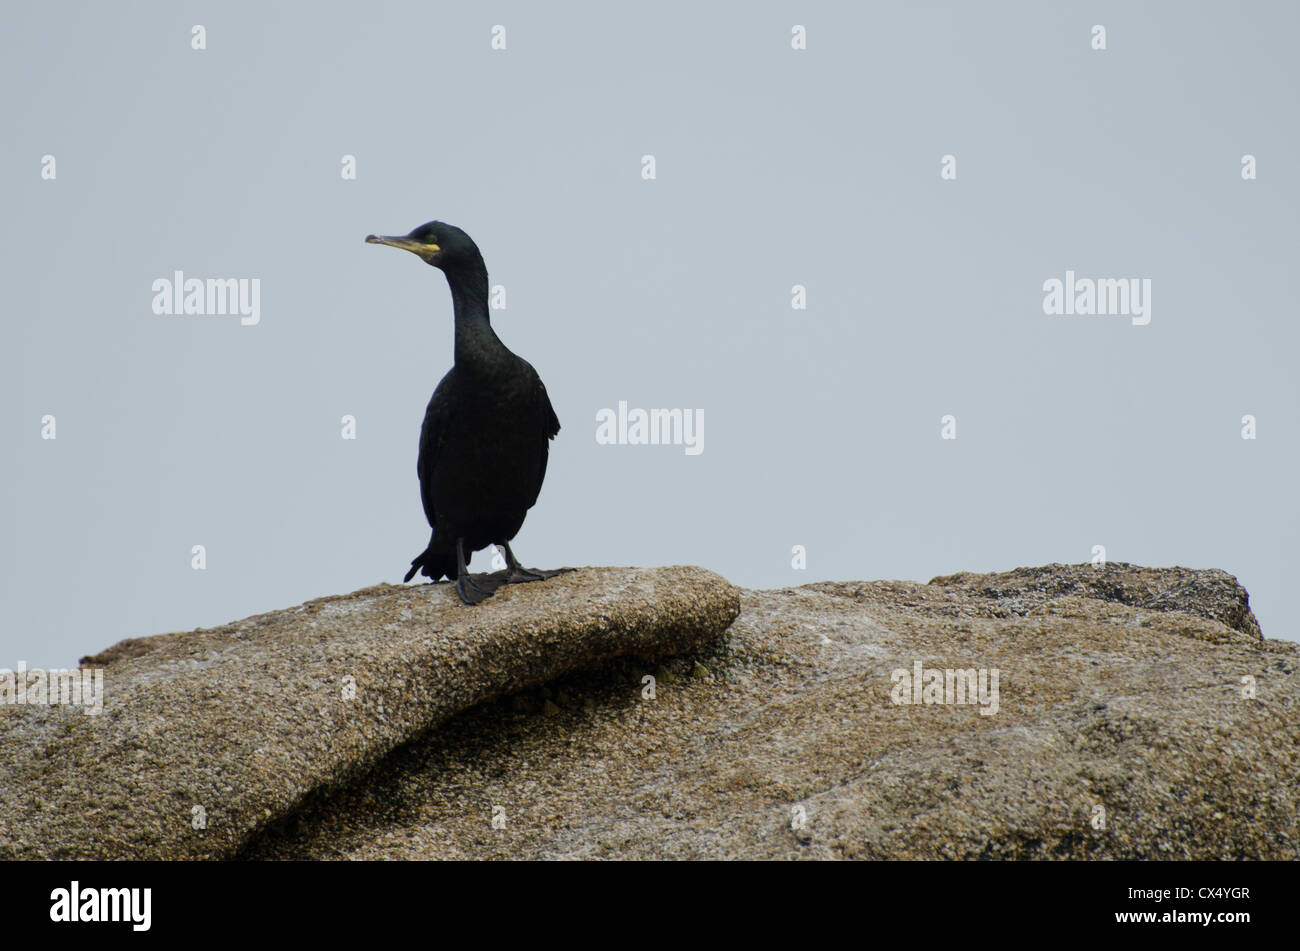 Shag at the scilly isles - Stock Image